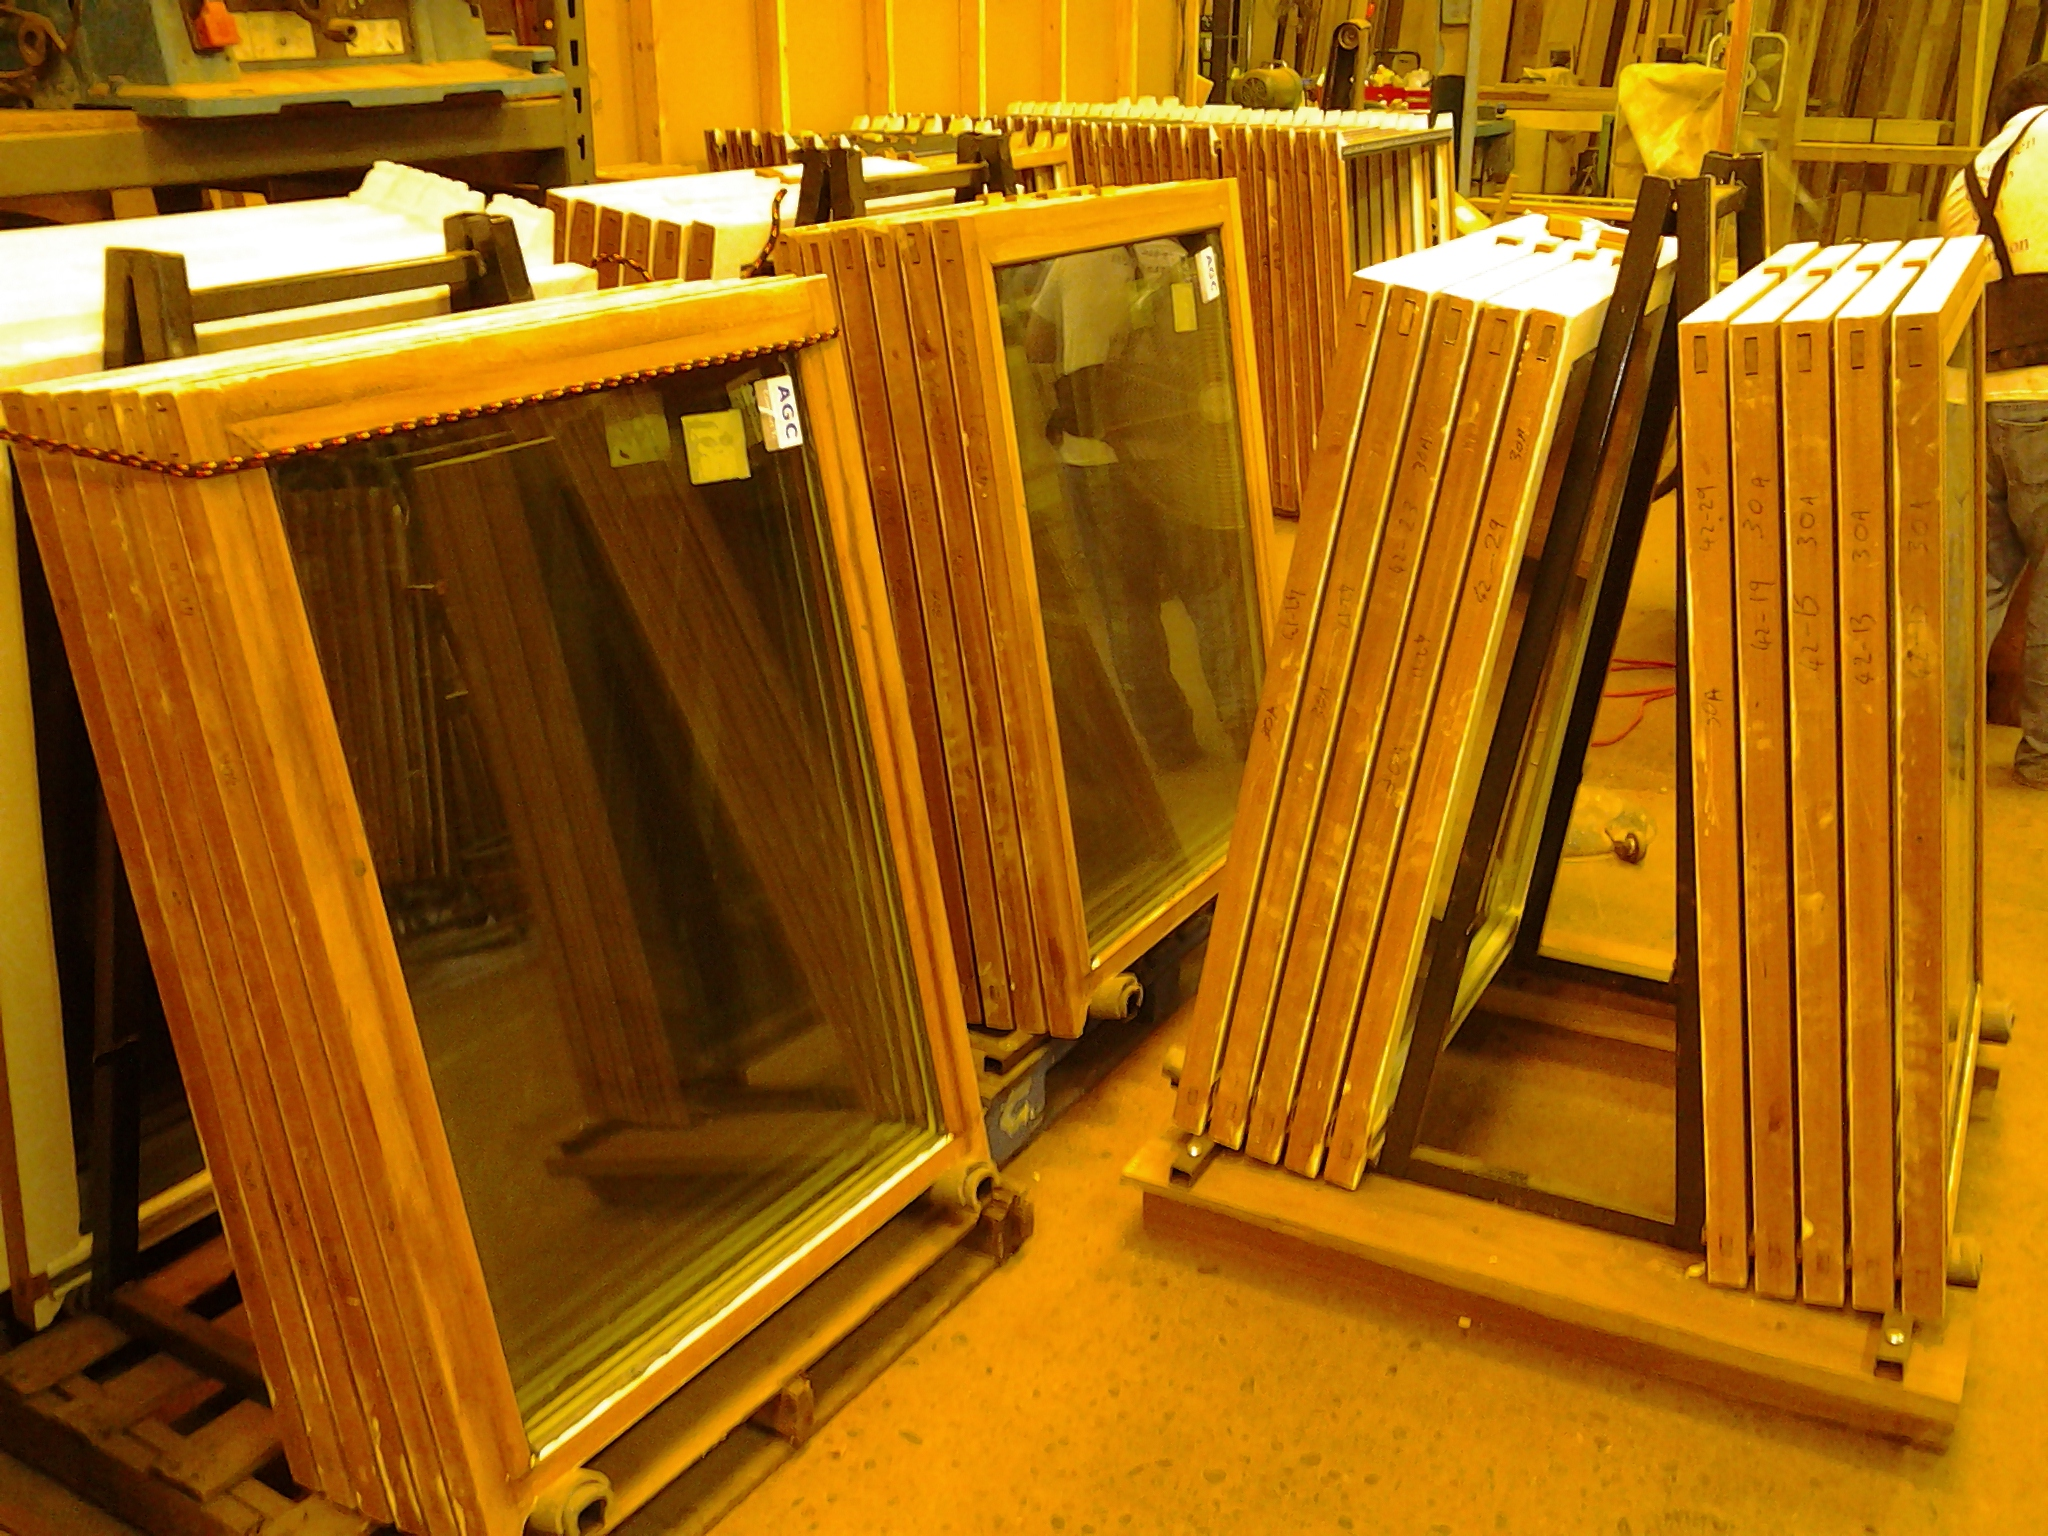 These sash will go back to window frames that are 120 years old.  Glass in them is insulating with low-E film and blast resistant vinyl interlayers.